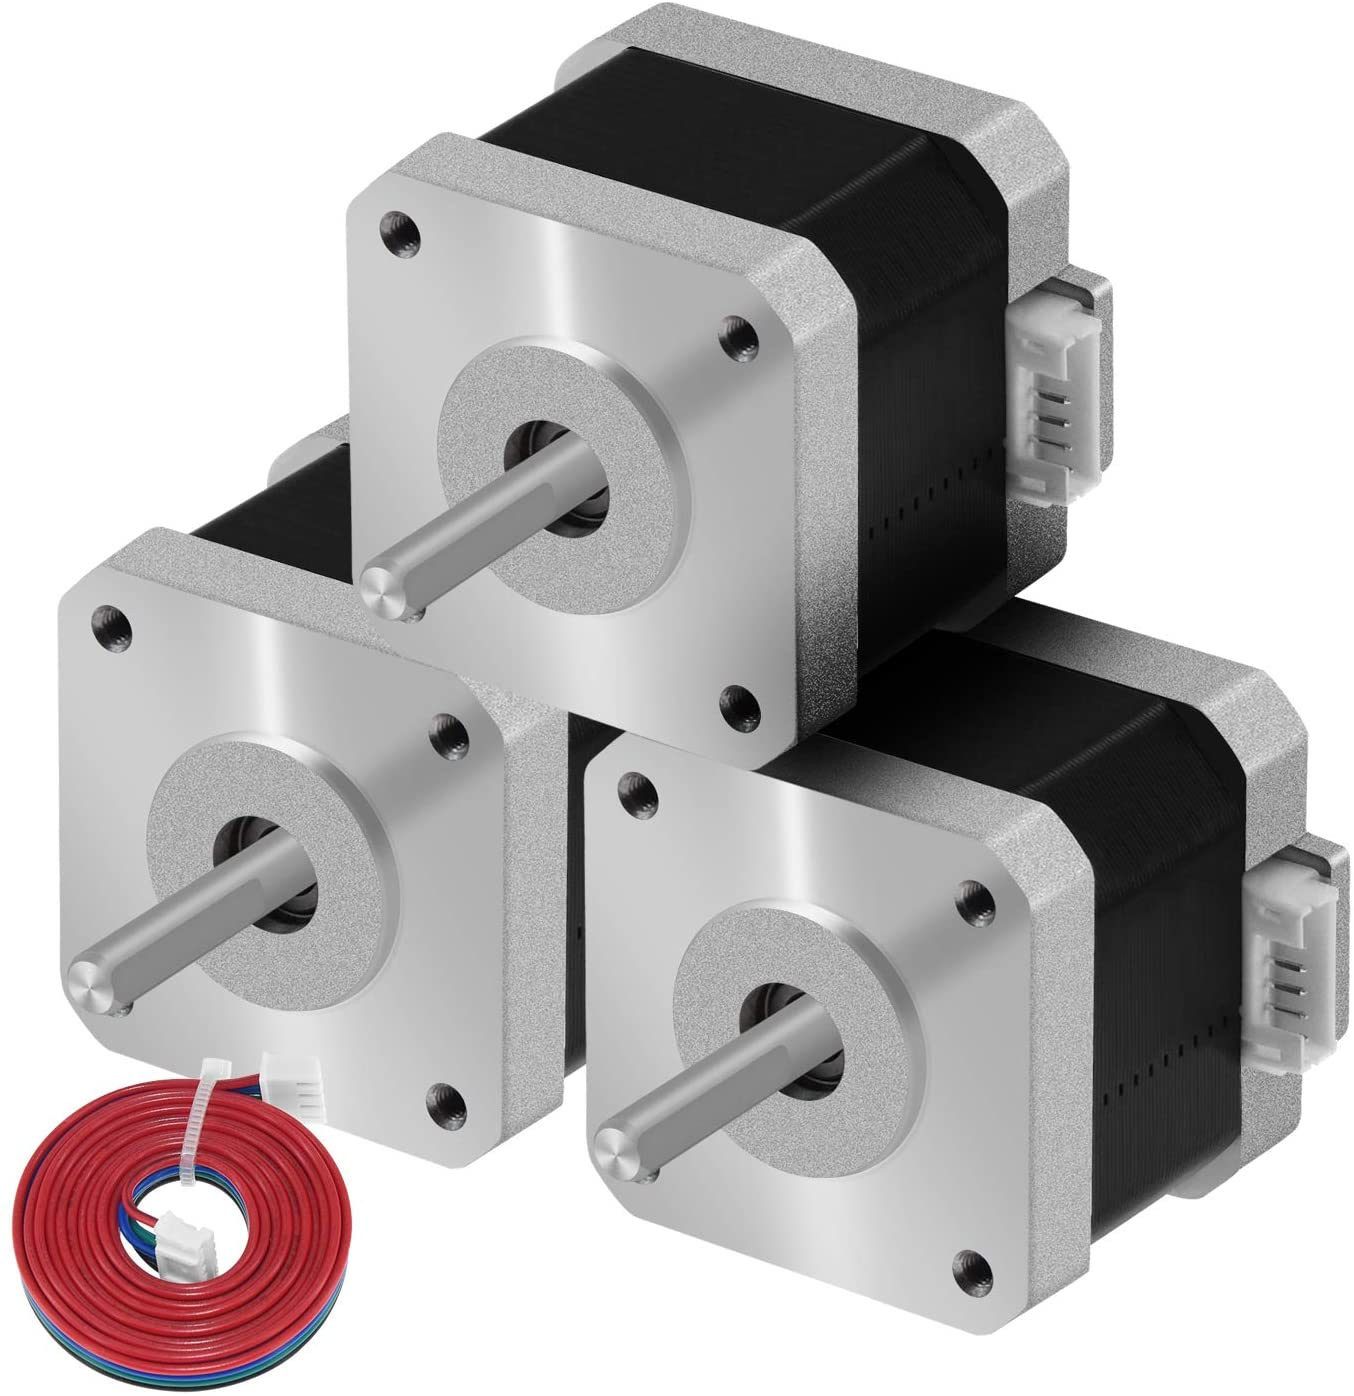 Usongshine Nema 17 Stepper Motor Bipolar 38mm Body 42N.cm (60oz.in) 1.5A 4-Lead with 1m Cable and Connector for 3D Printer/Extruder/DIY CNC(17HS4401 Pack of 3)